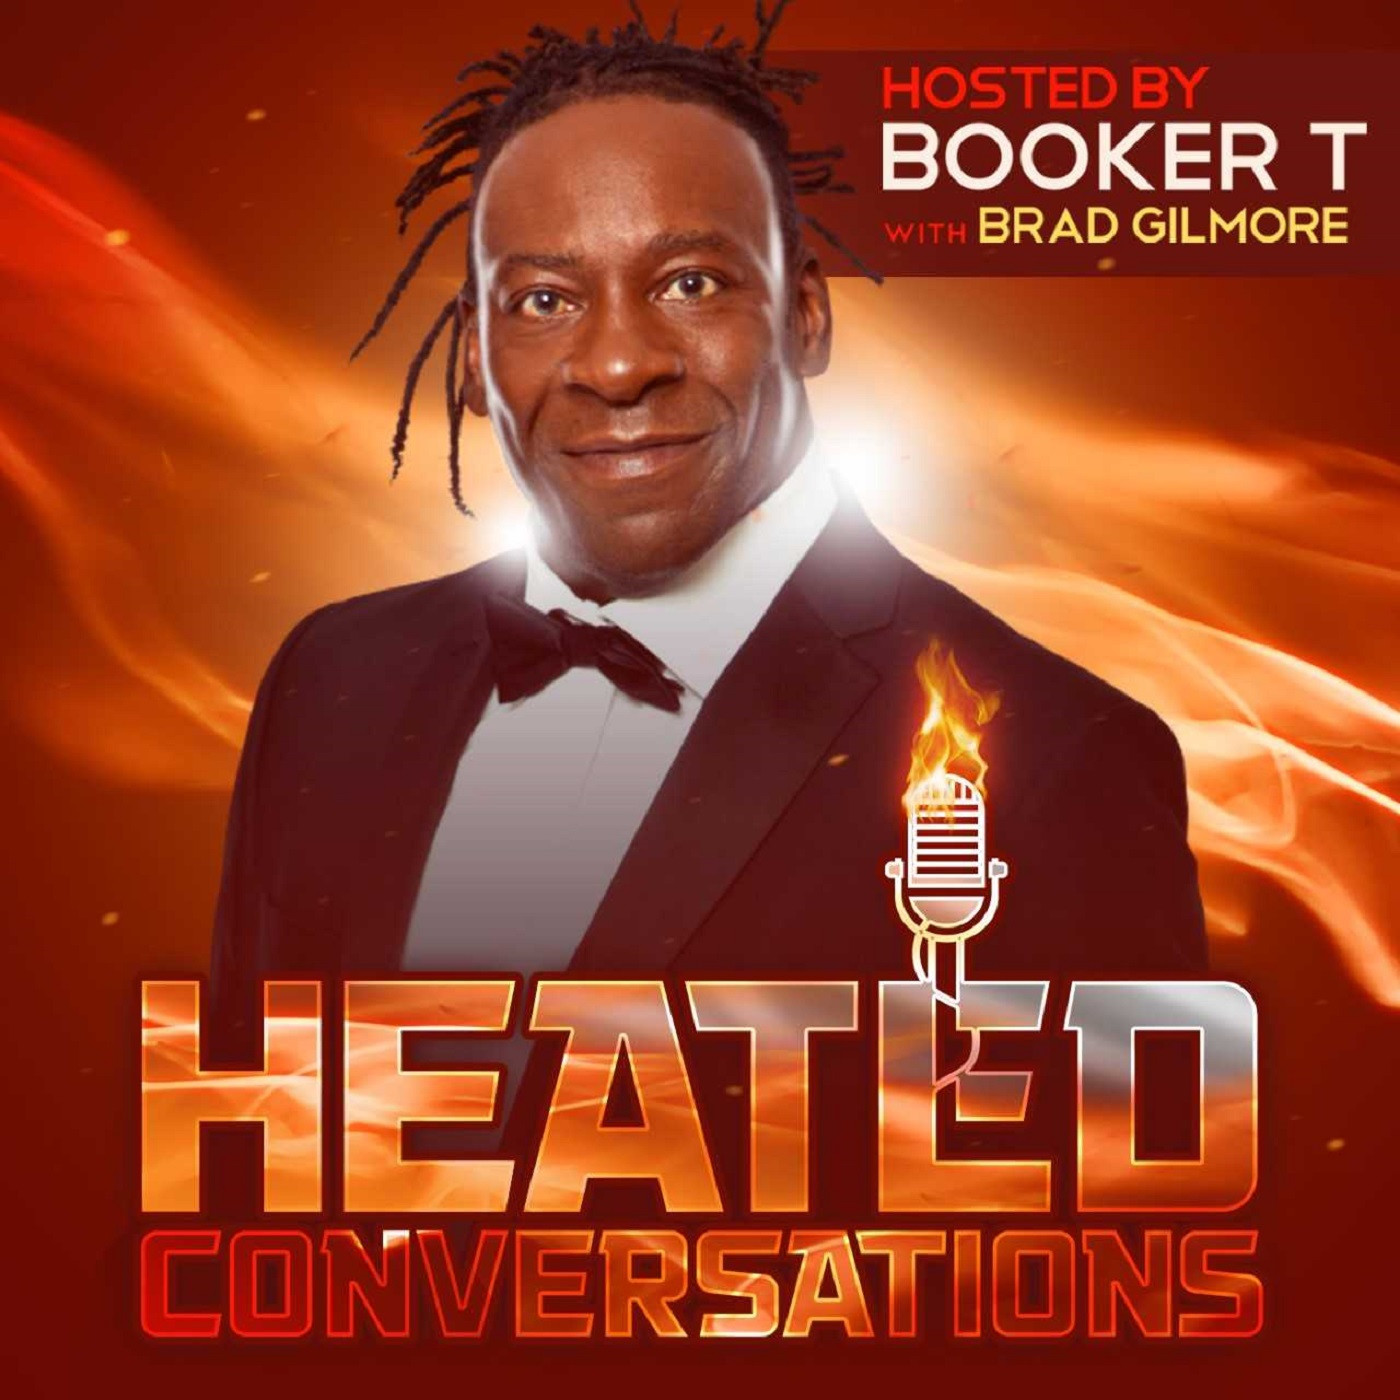 Heated Conversations: Hosted By Booker T